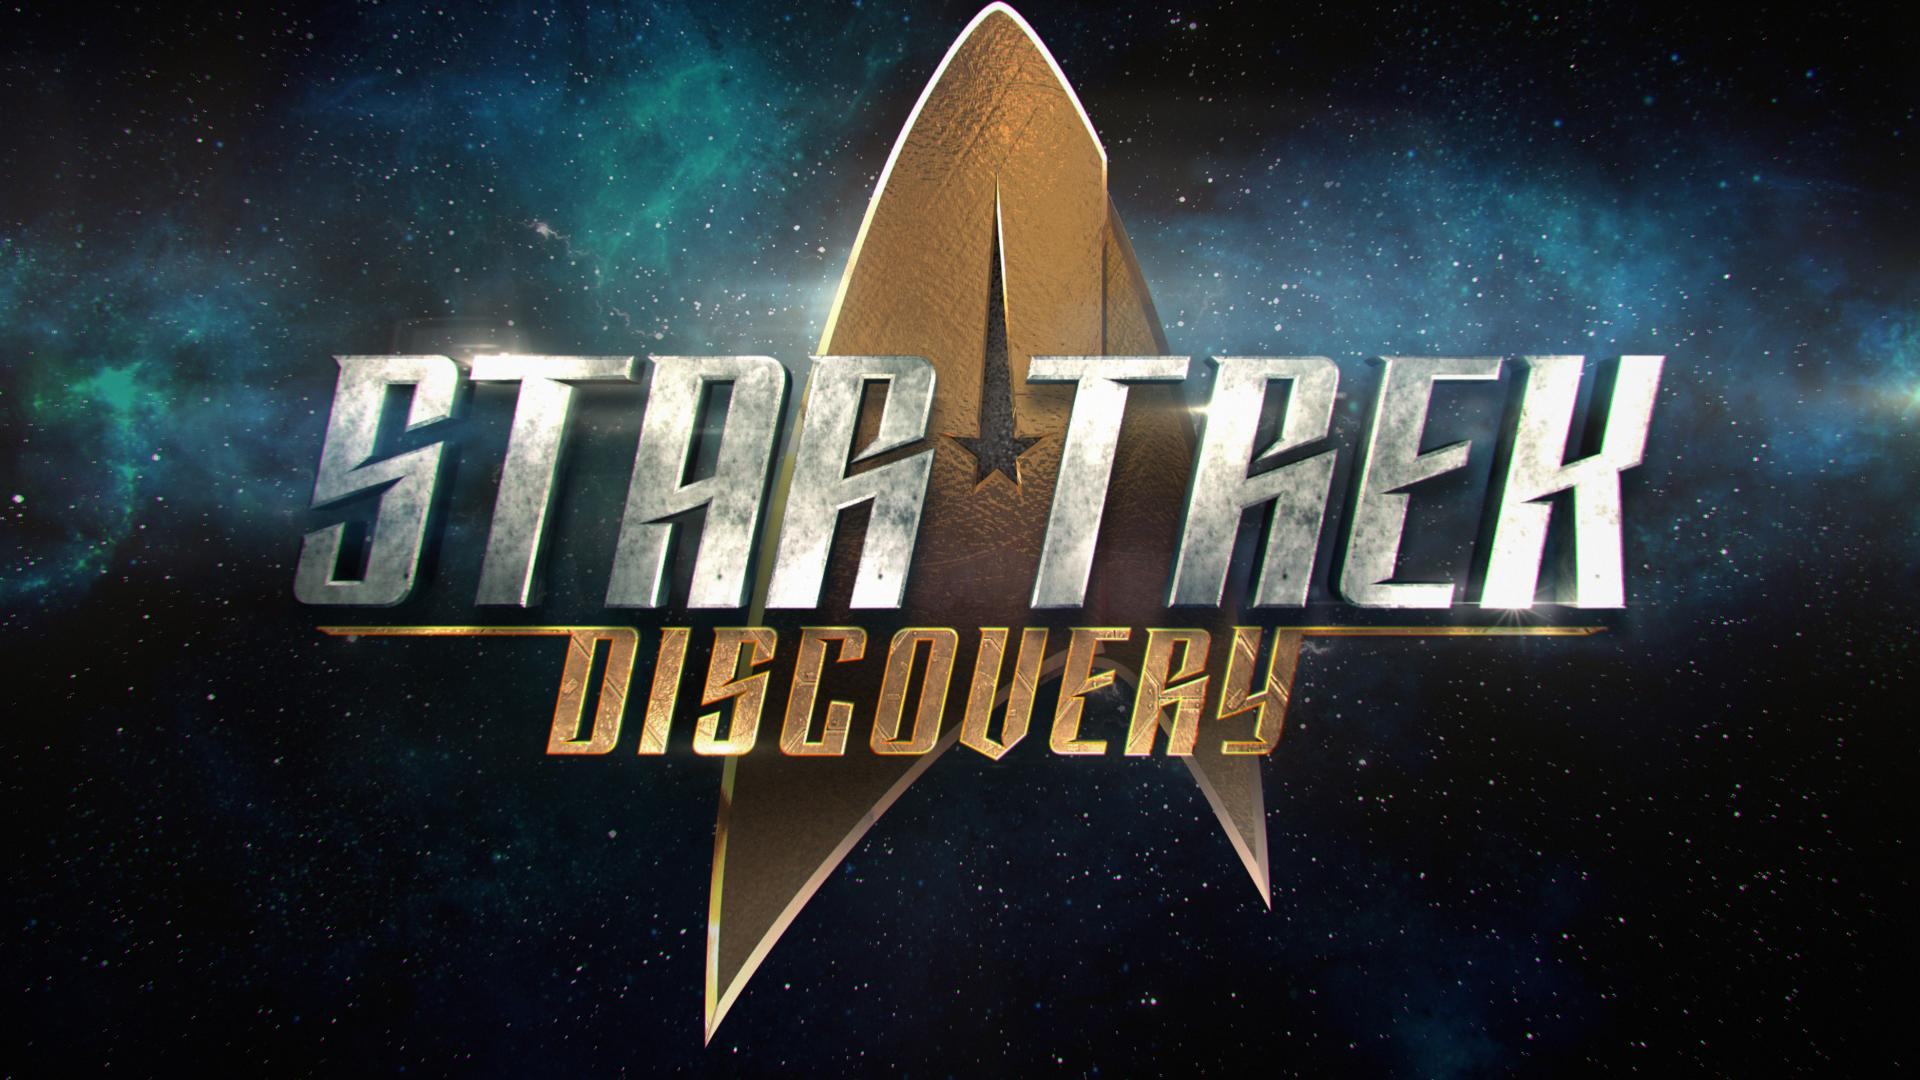 Star Trek: Discovery renewed for second season, leading subscriber growth for CBSAA